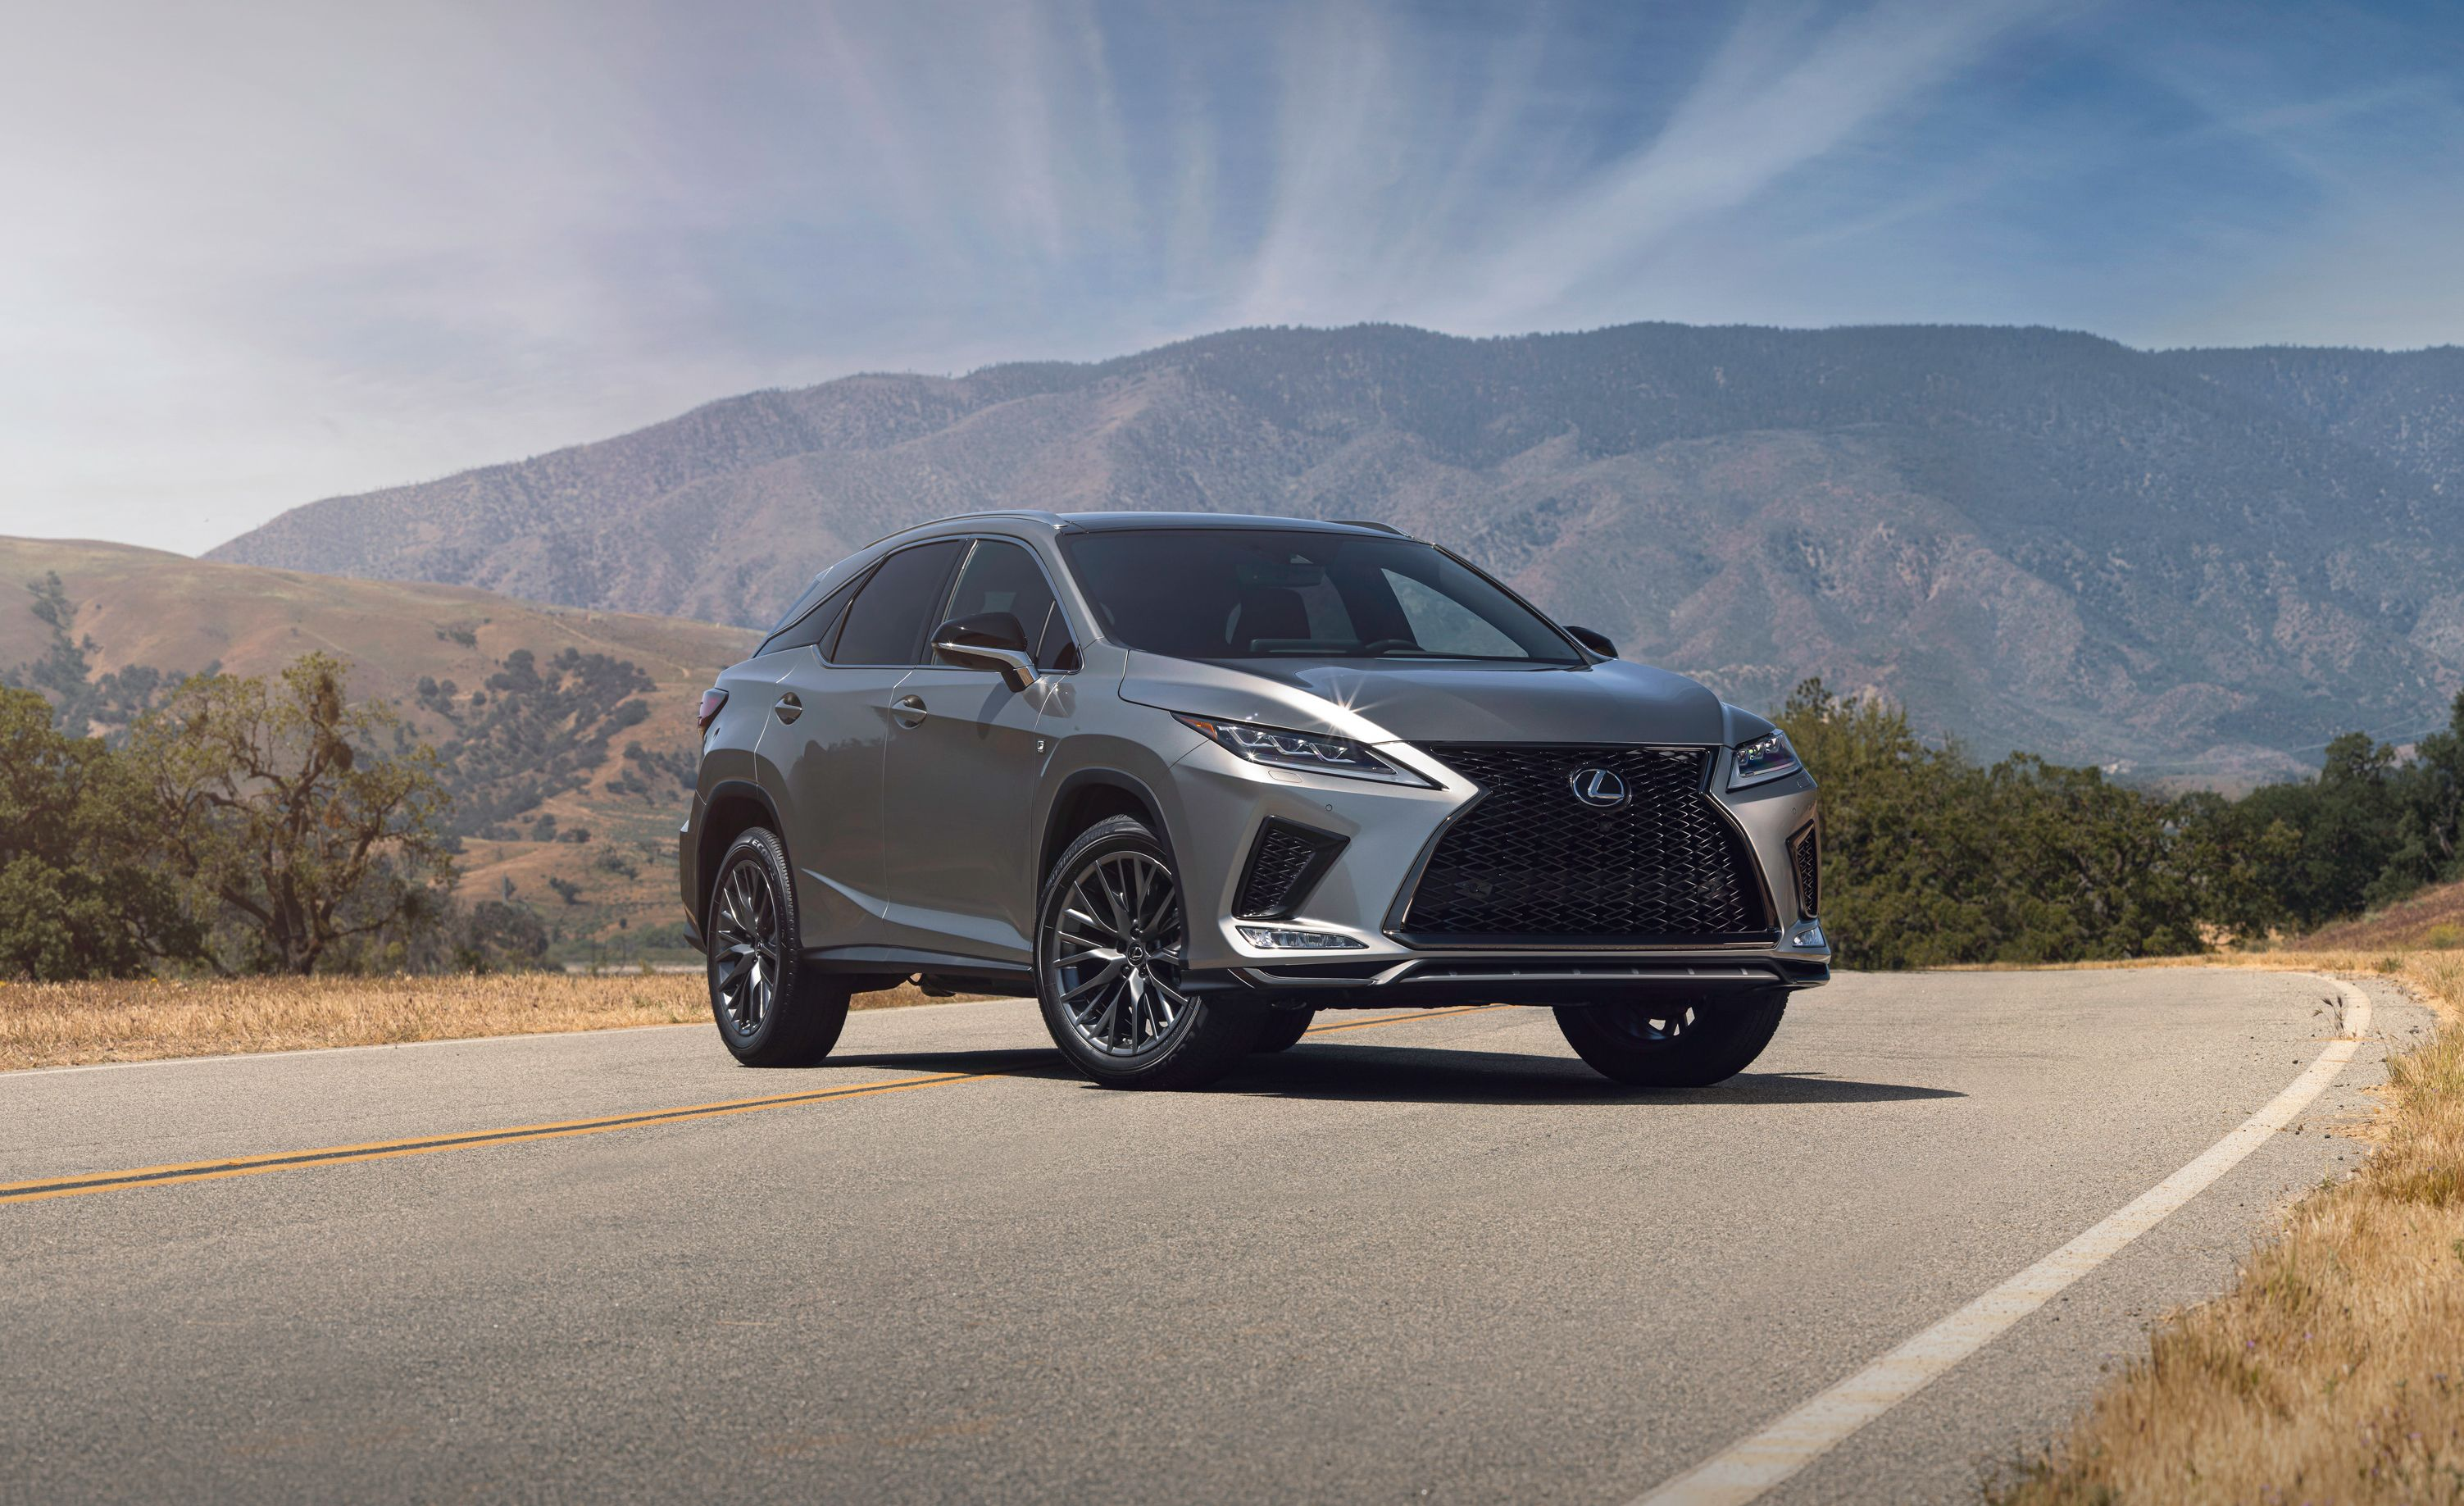 2020 Lexus Rx350 And Rx450h Details Of Updated Models